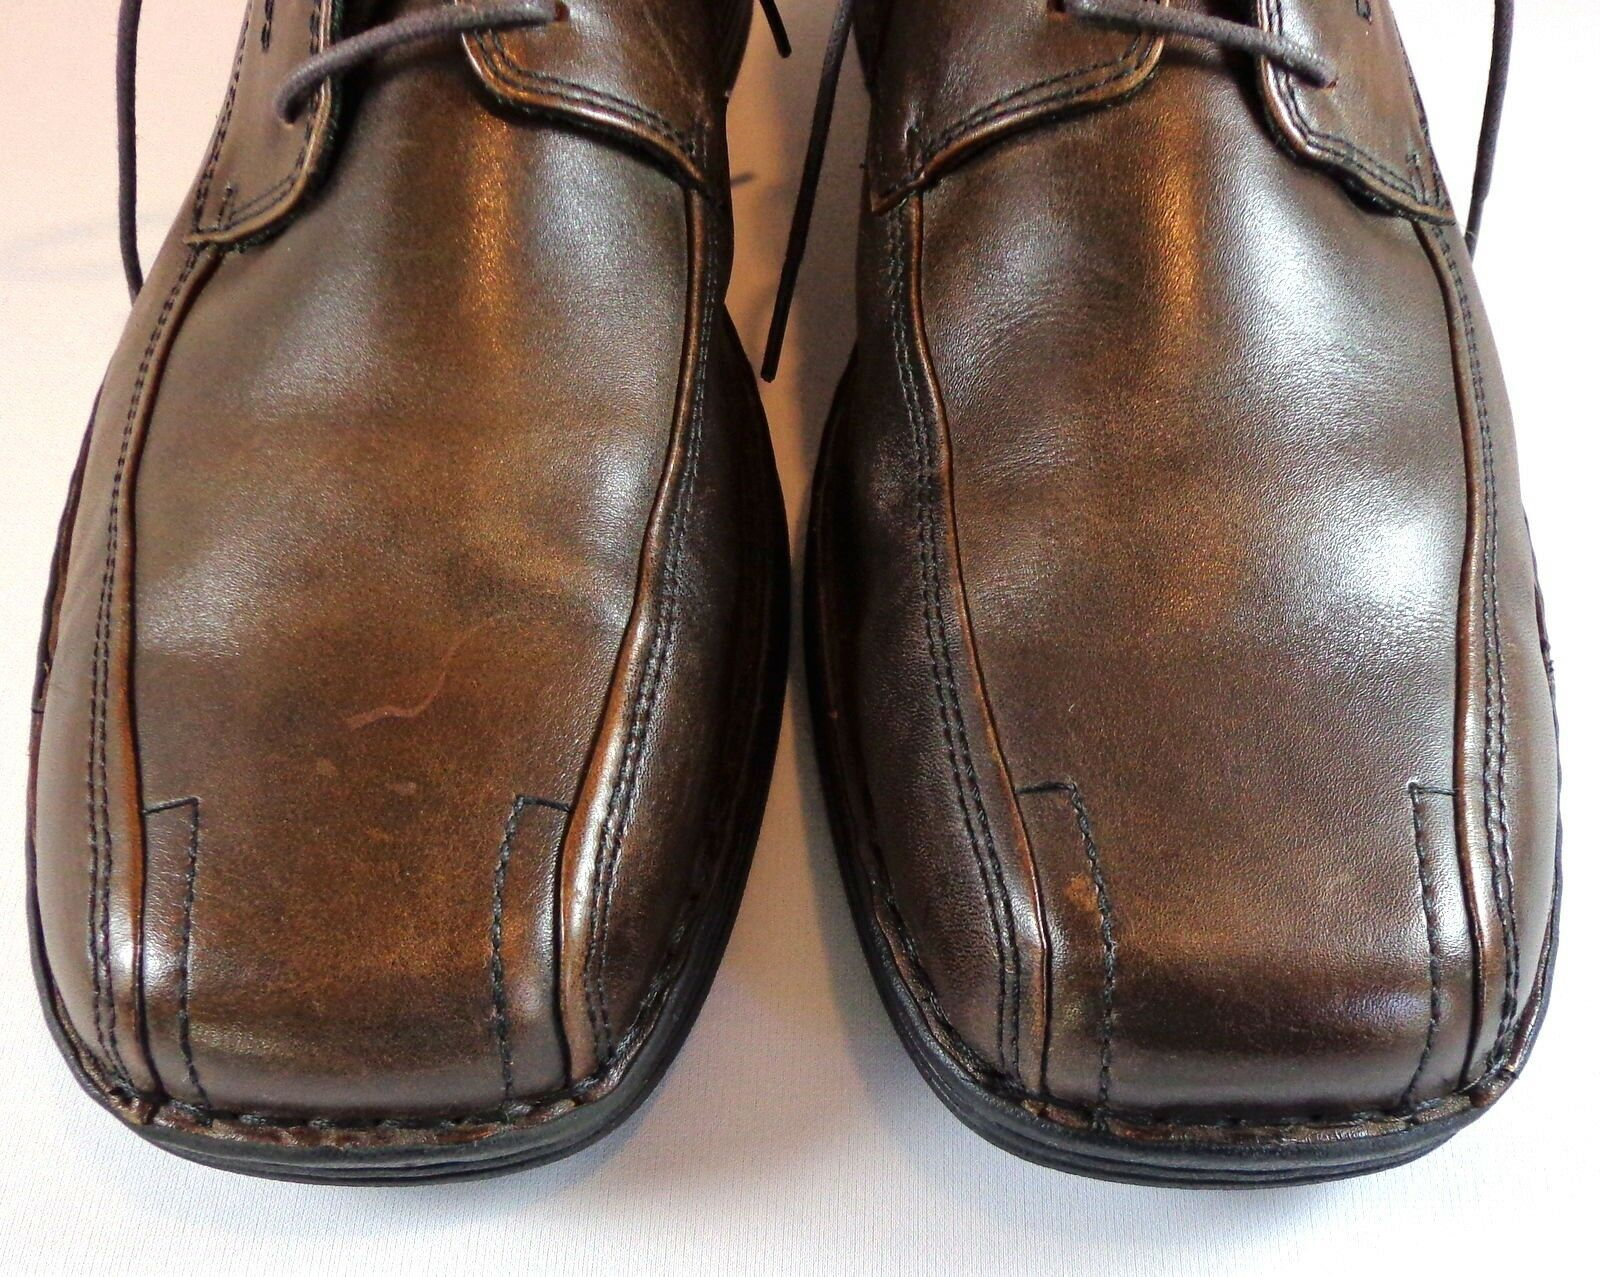 Clarks Oxford Mens Brown Leather Lace Up Shoes Size 13 M